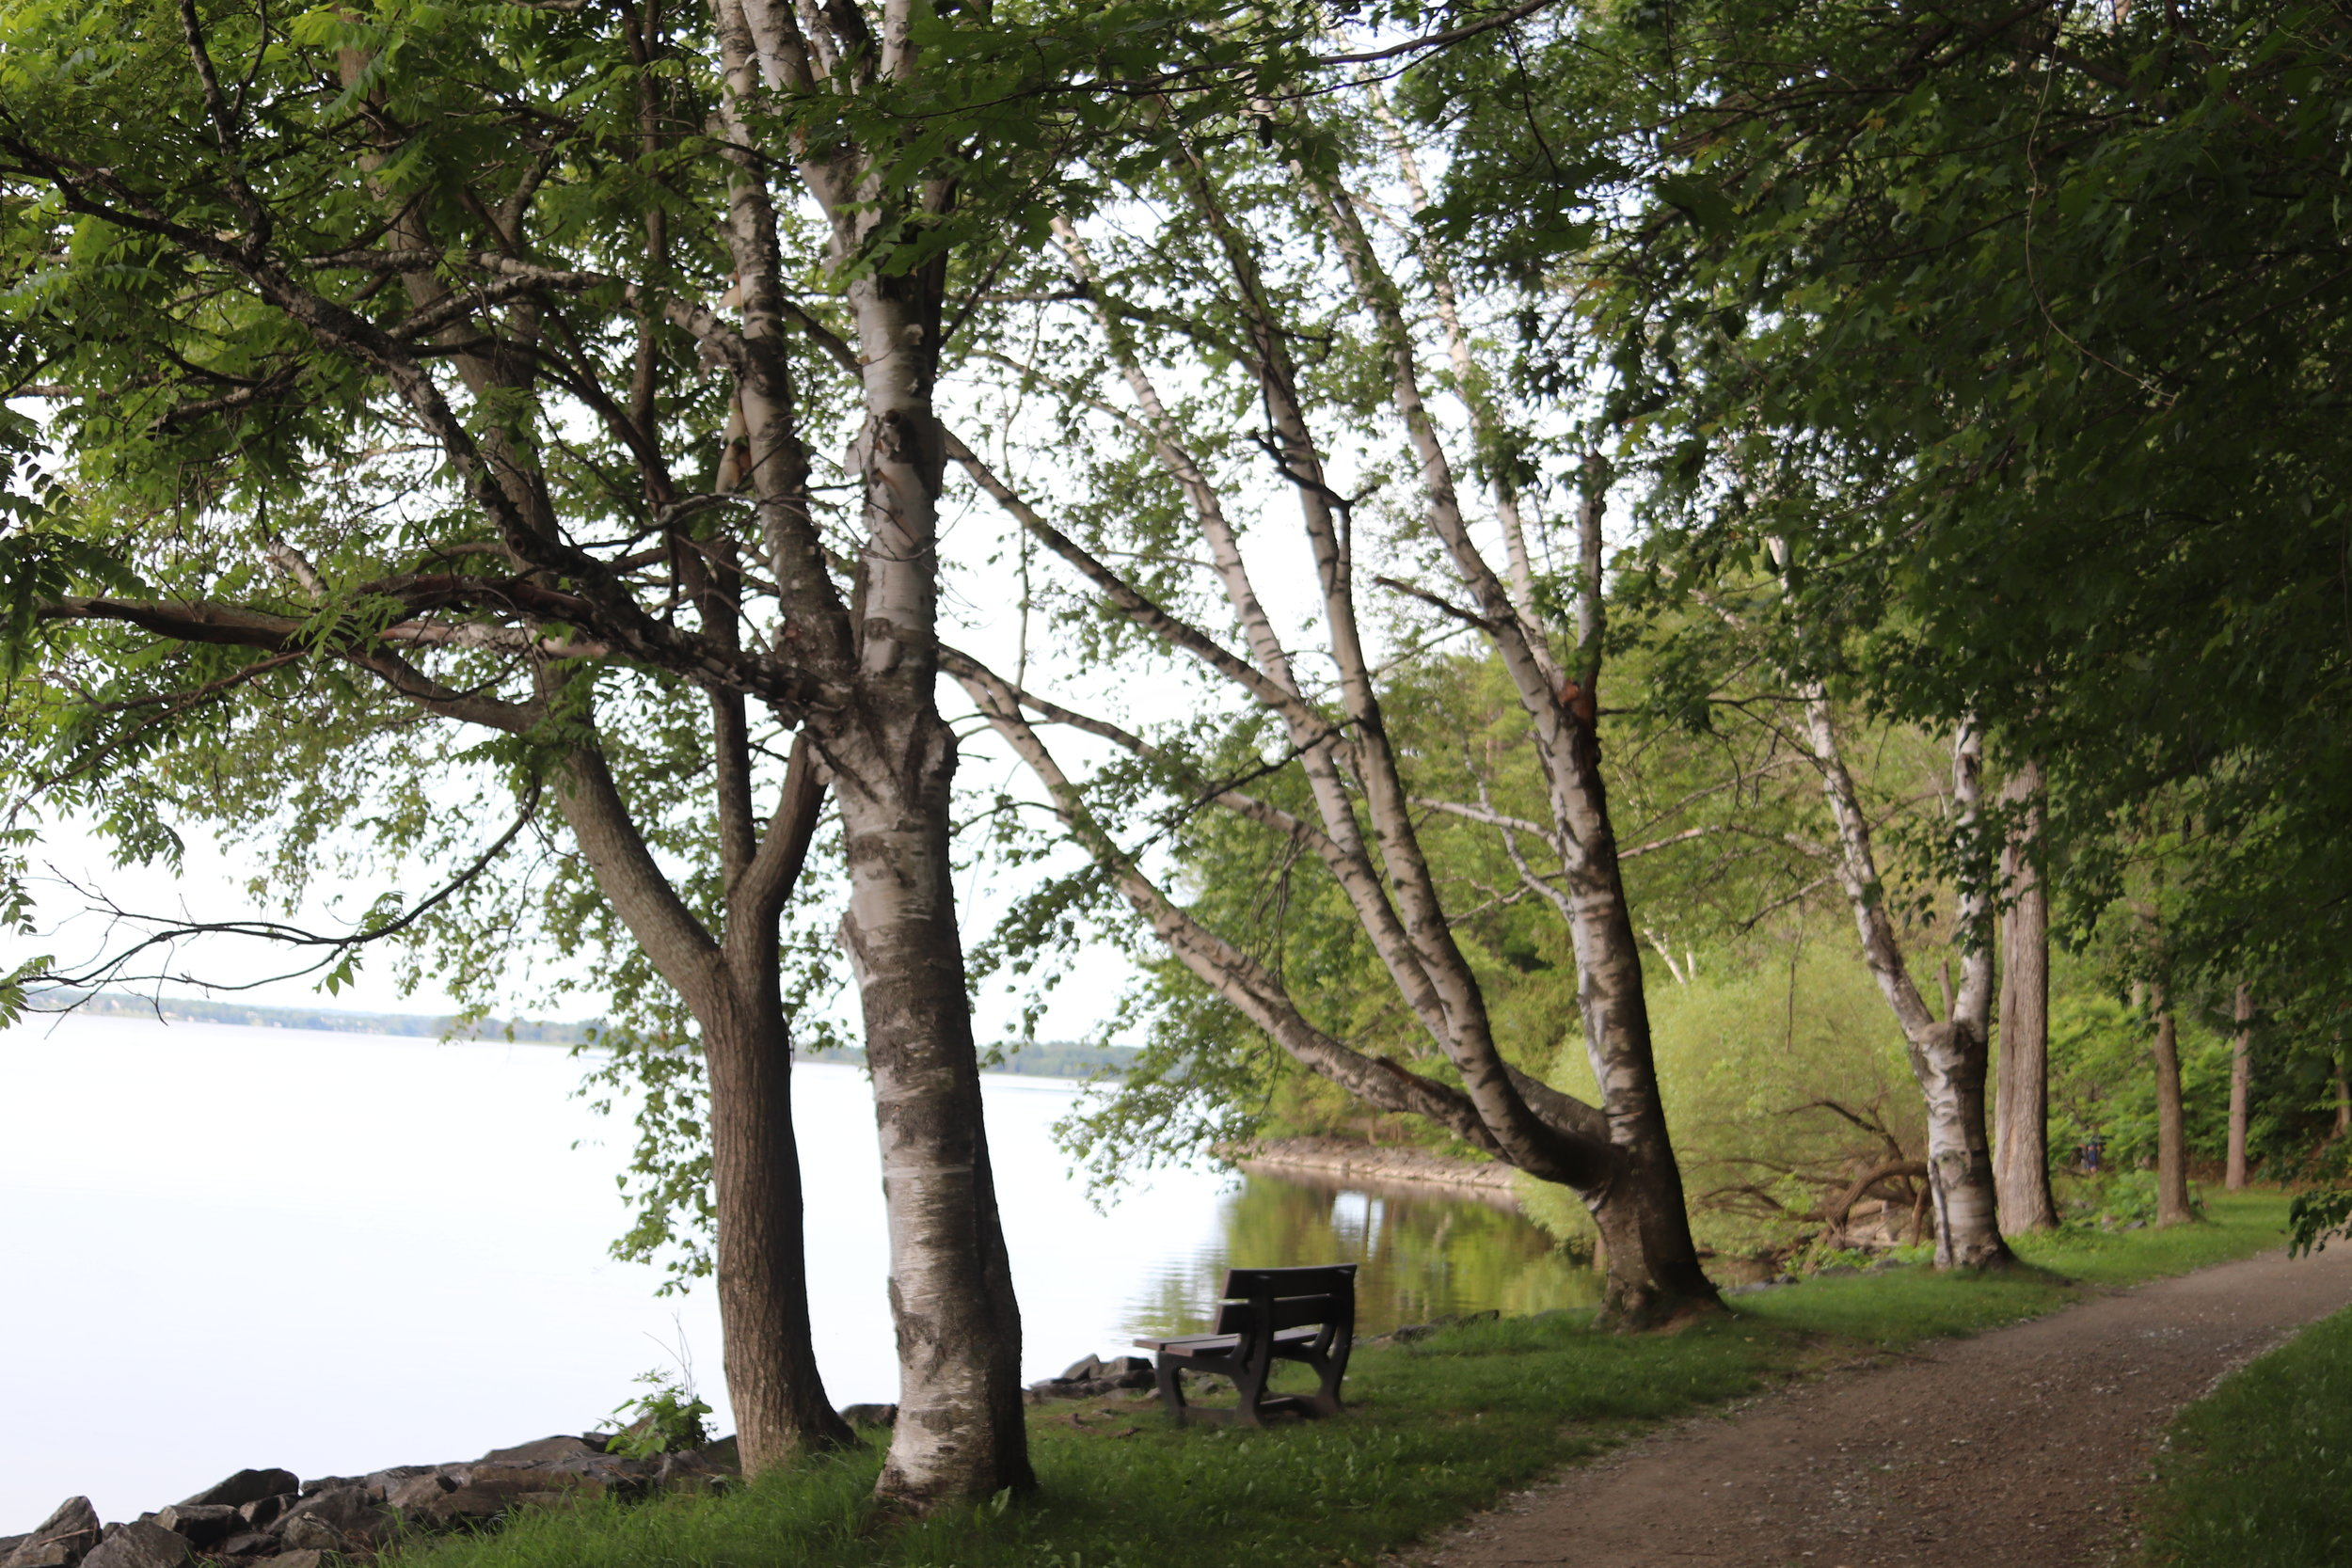 - Our stay at the Chateau Montebello Marina provided an opportunity for a brisk early morning walk!